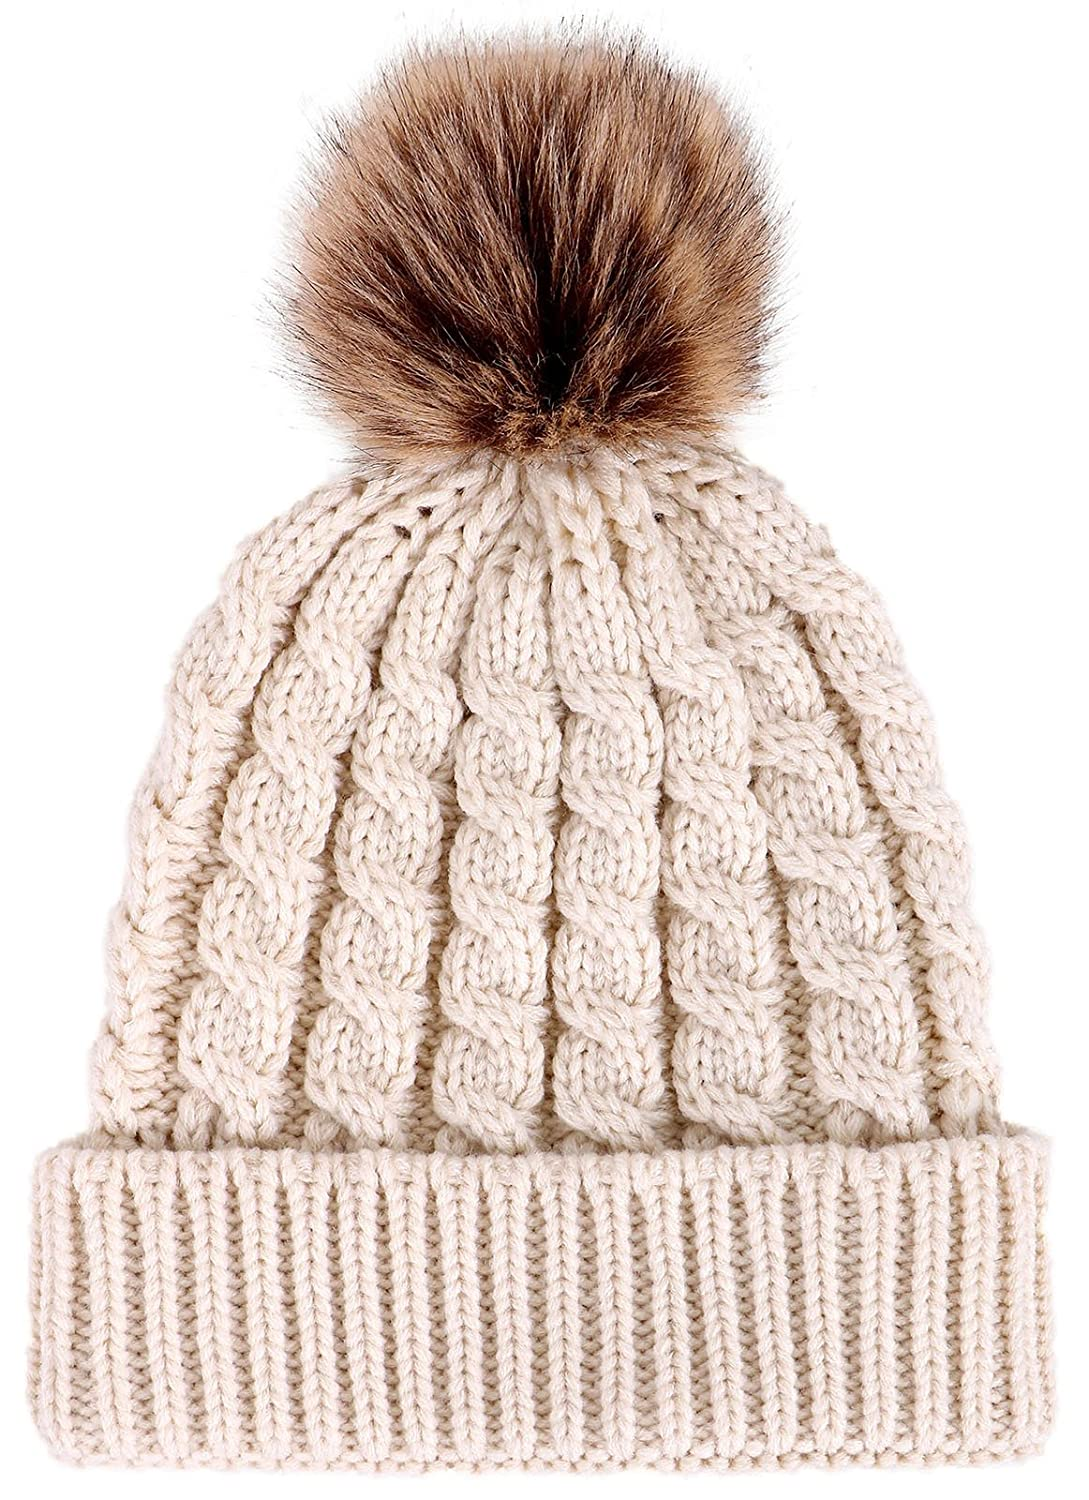 b20e66fe1cd16 Women s Winter Soft Knitted Beanie Hat with Faux Fur Pom Pom